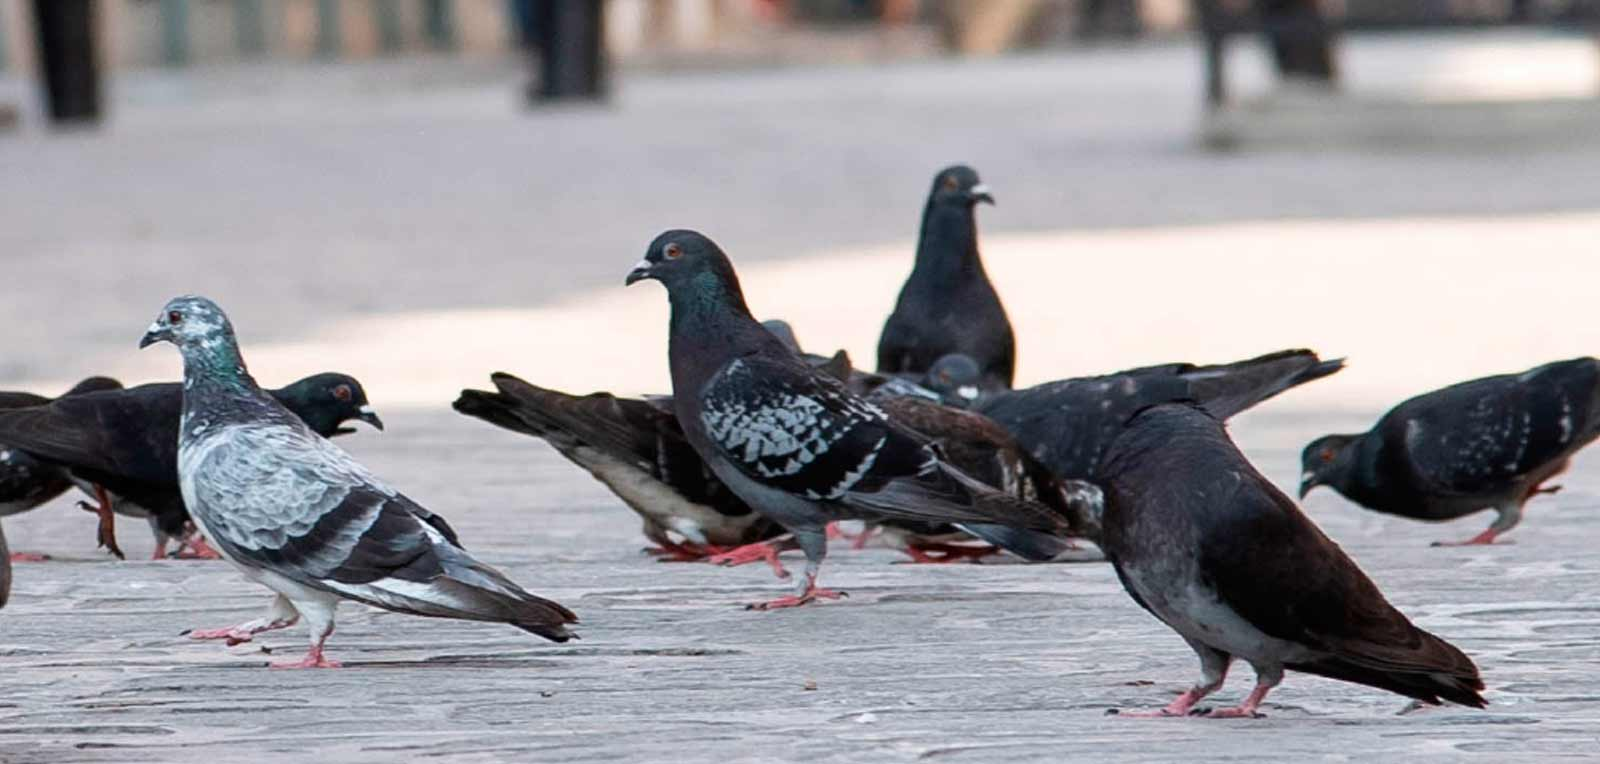 Pigeons, birds of great intelligence